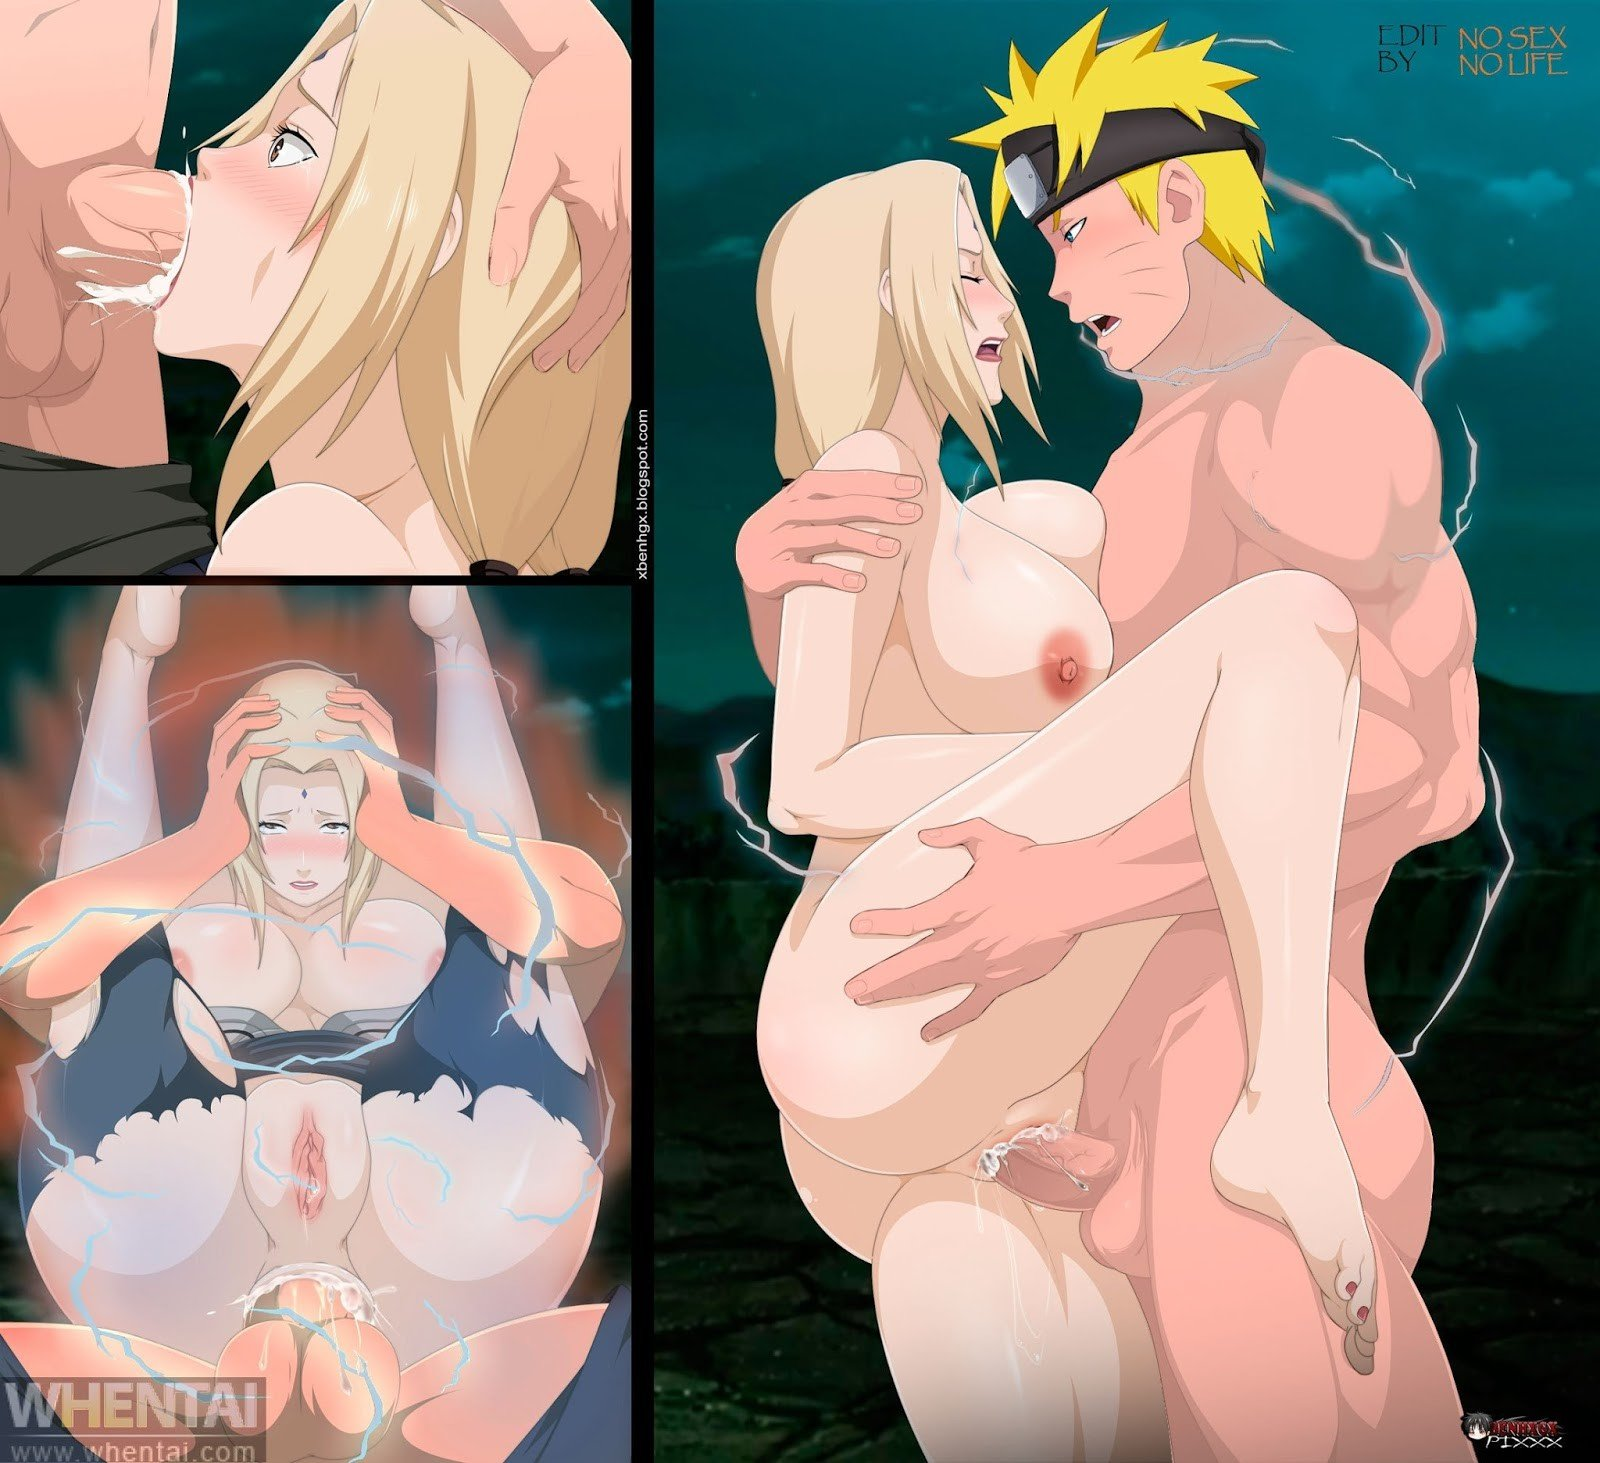 Tsunade hd porn comics, asian recipe rice